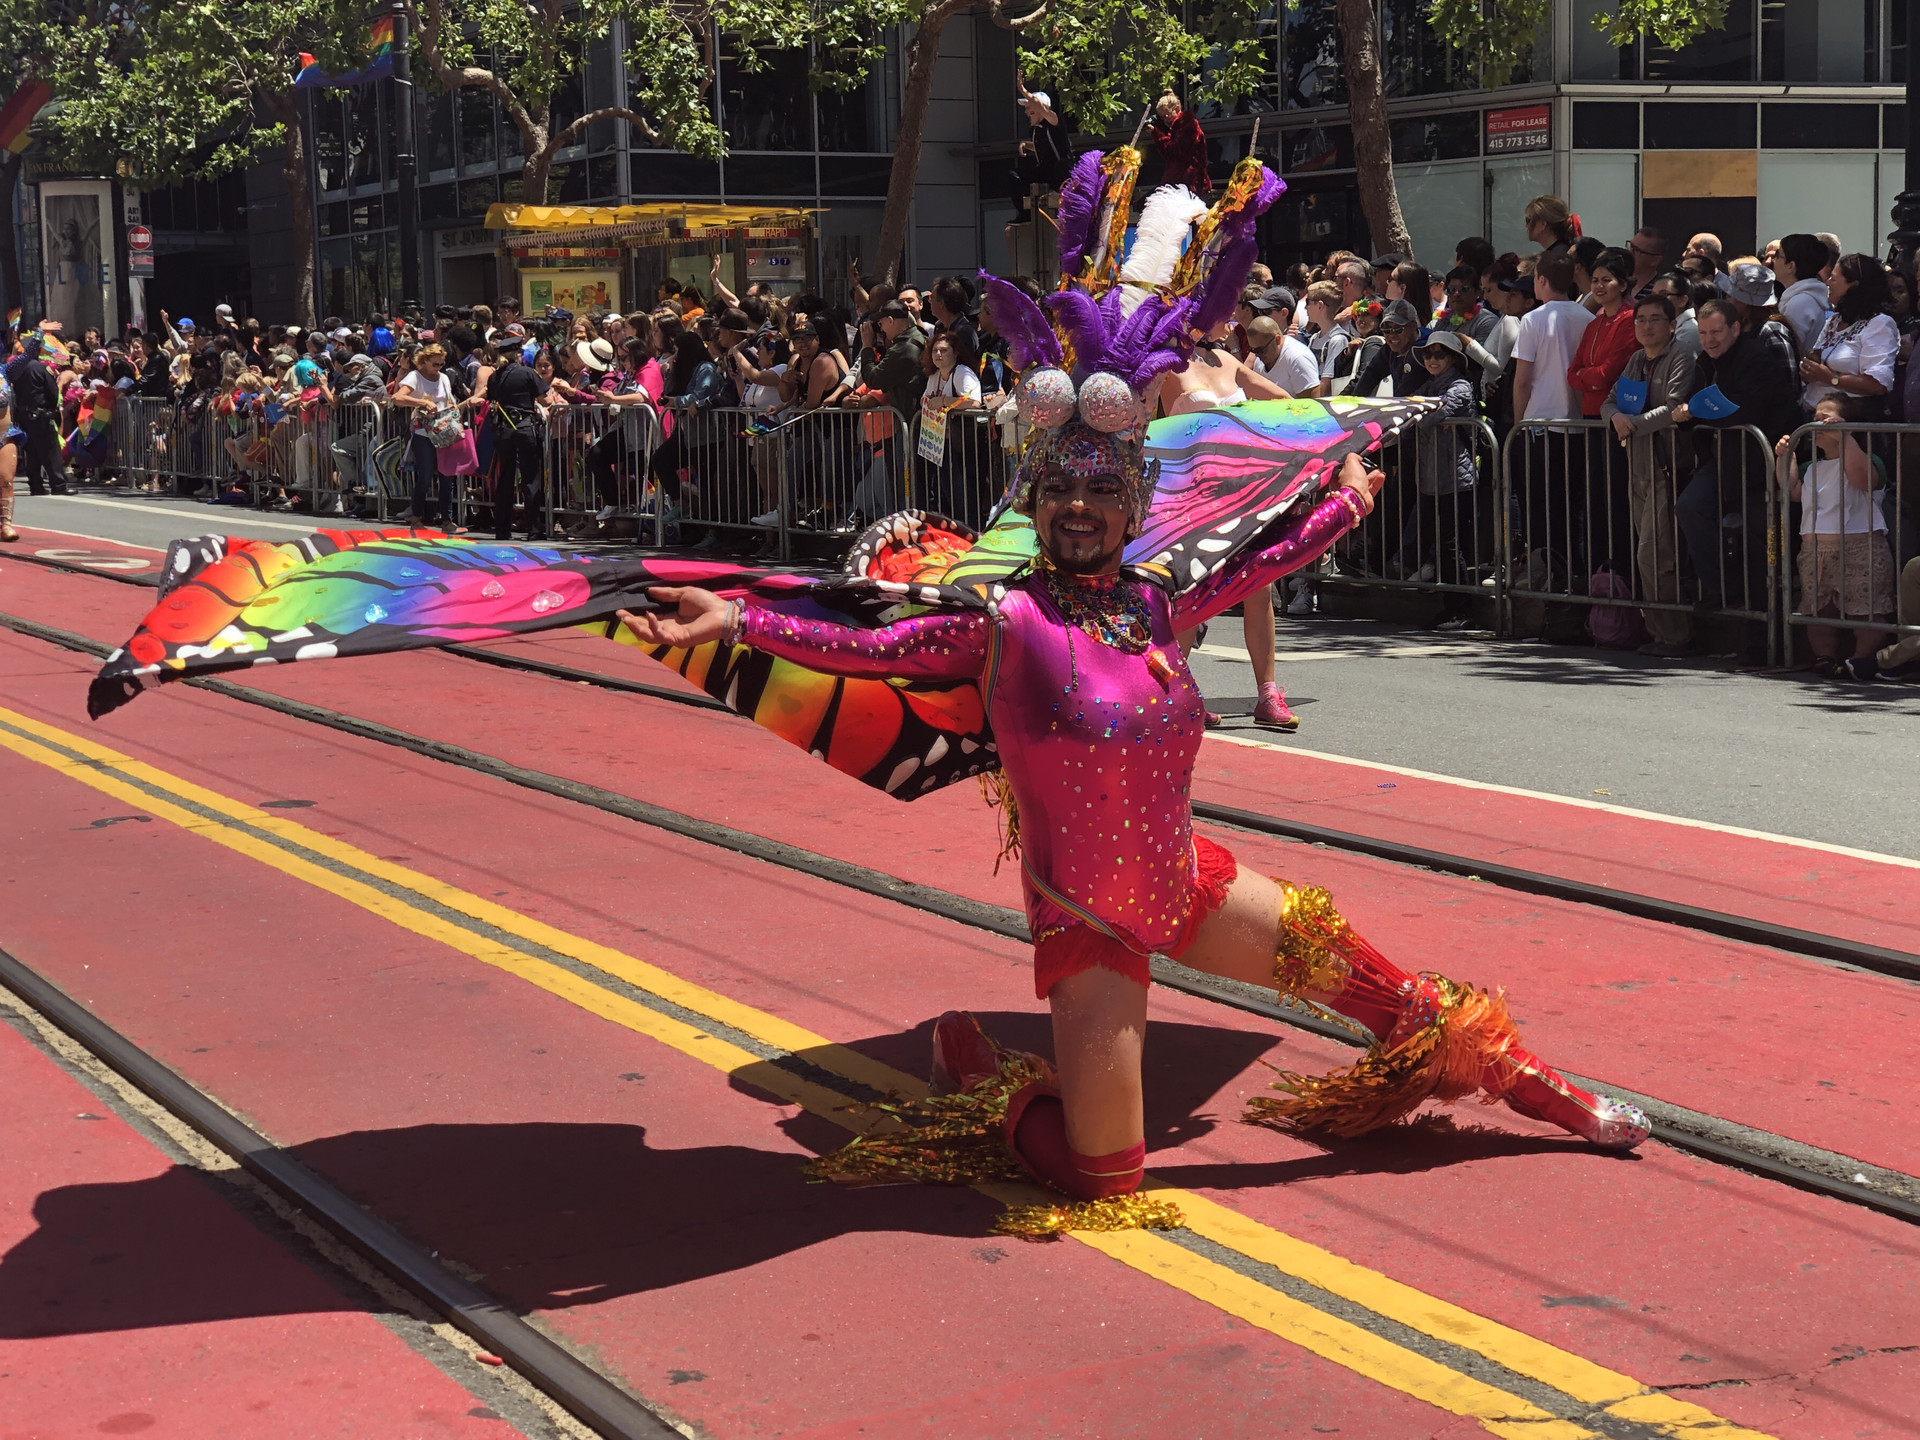 SF Pride Parade Brings Together 'Generations of Resistance'